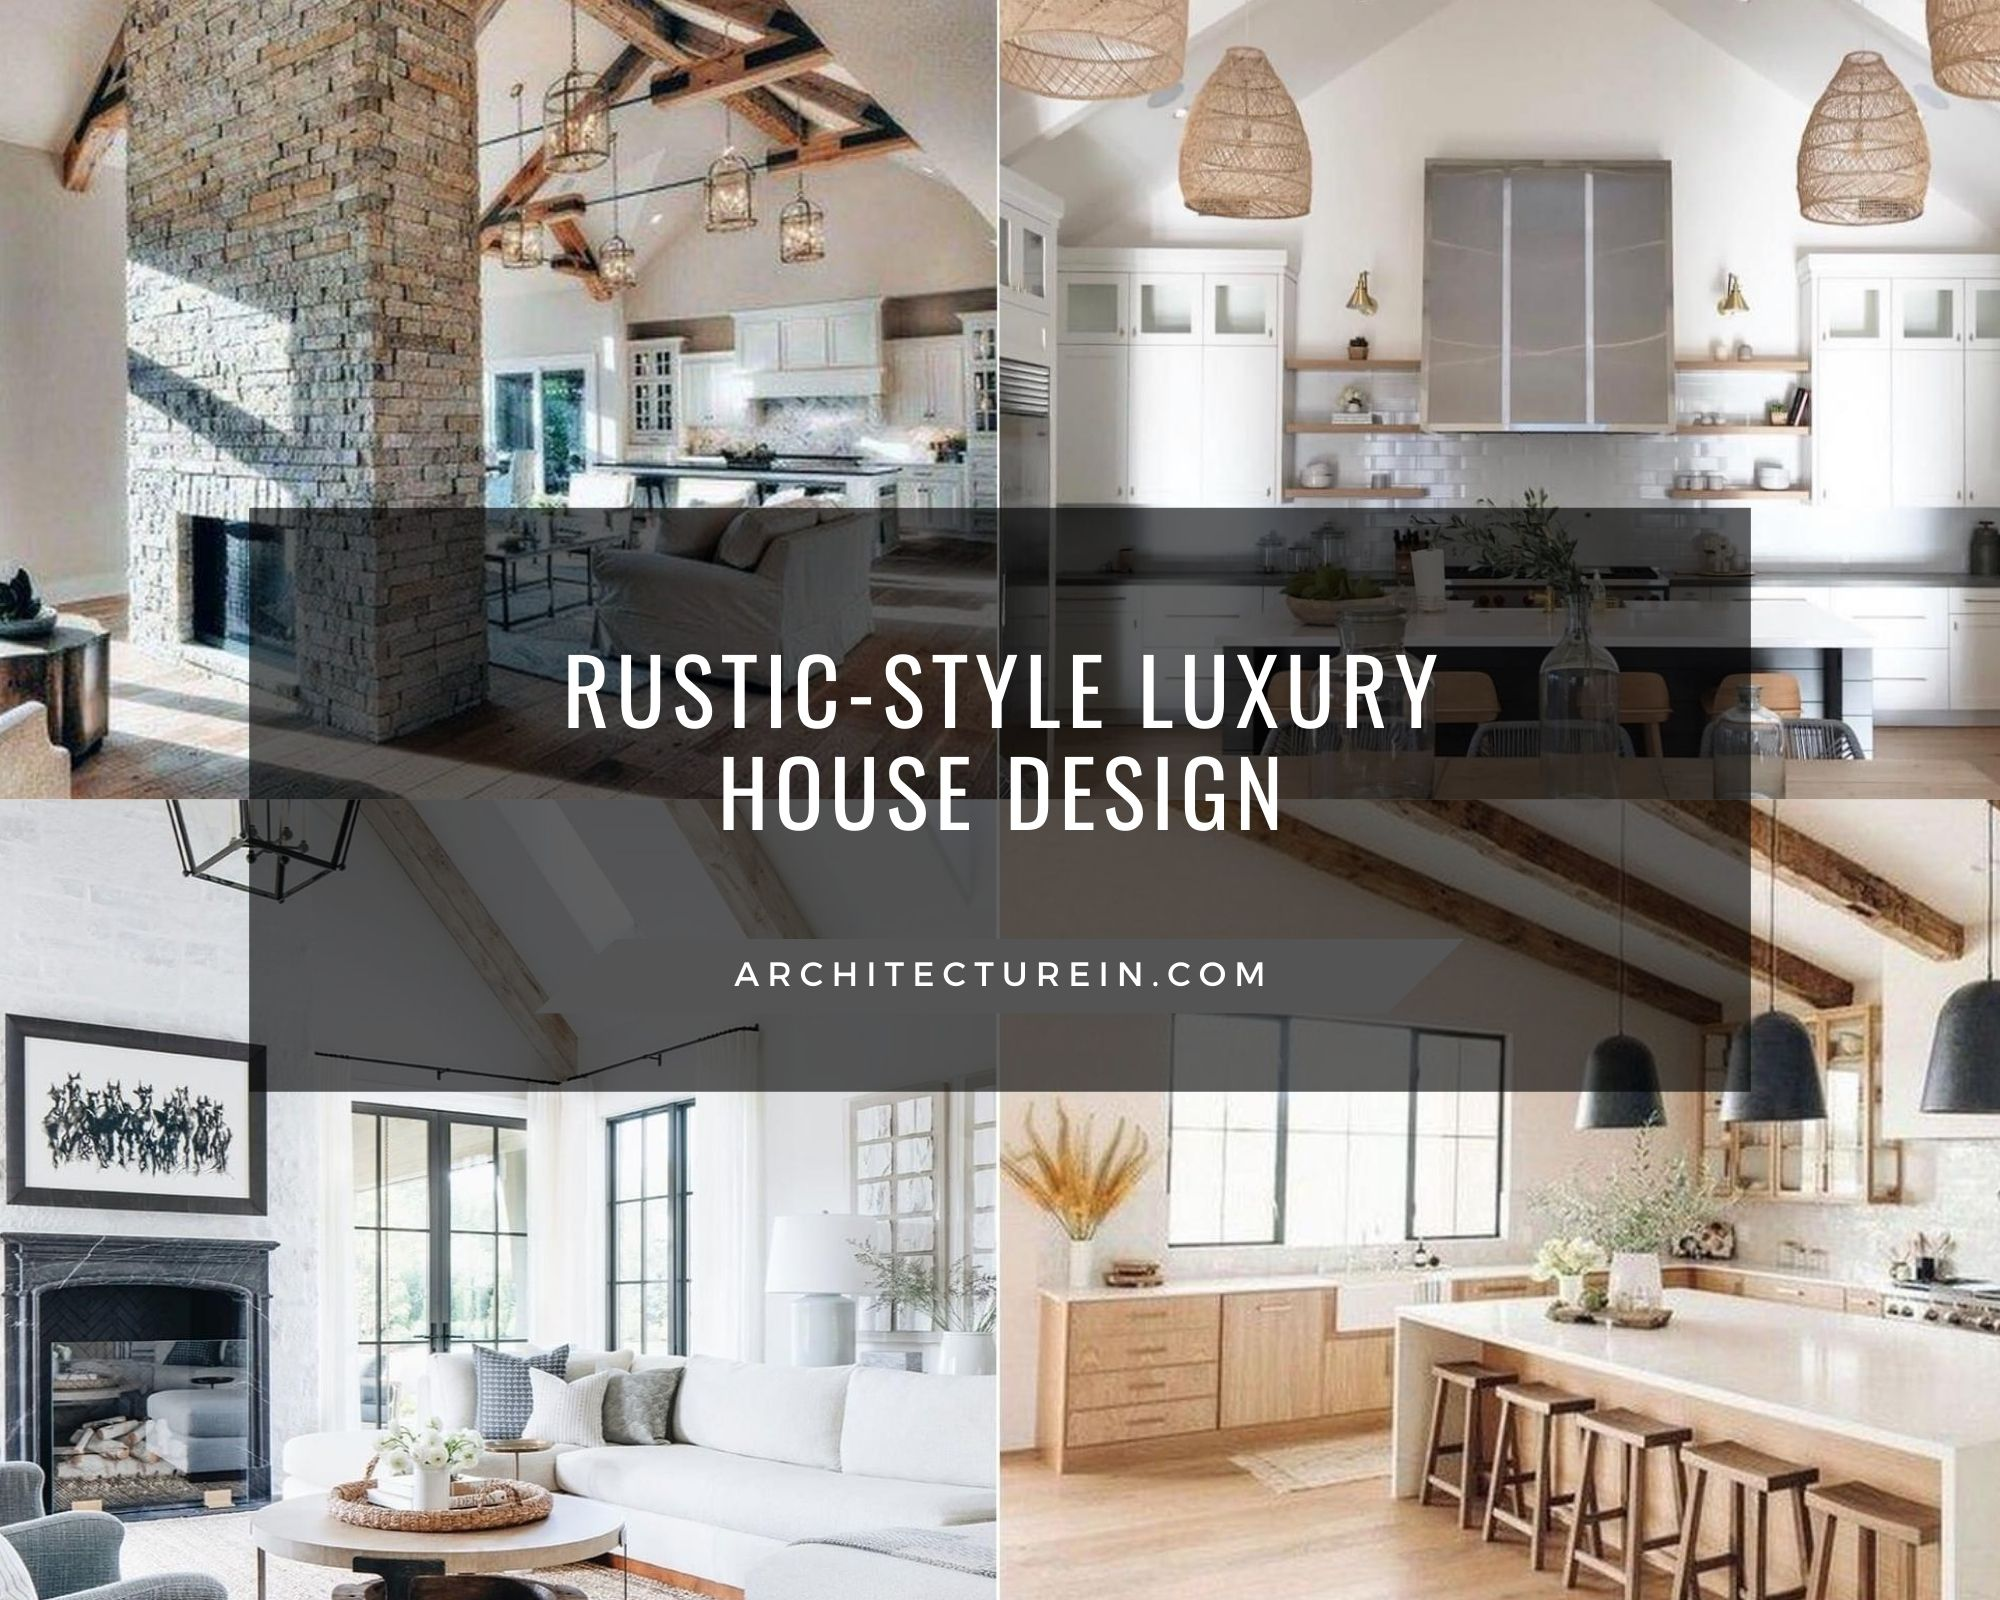 Front View for Rustic-style Luxury House Design